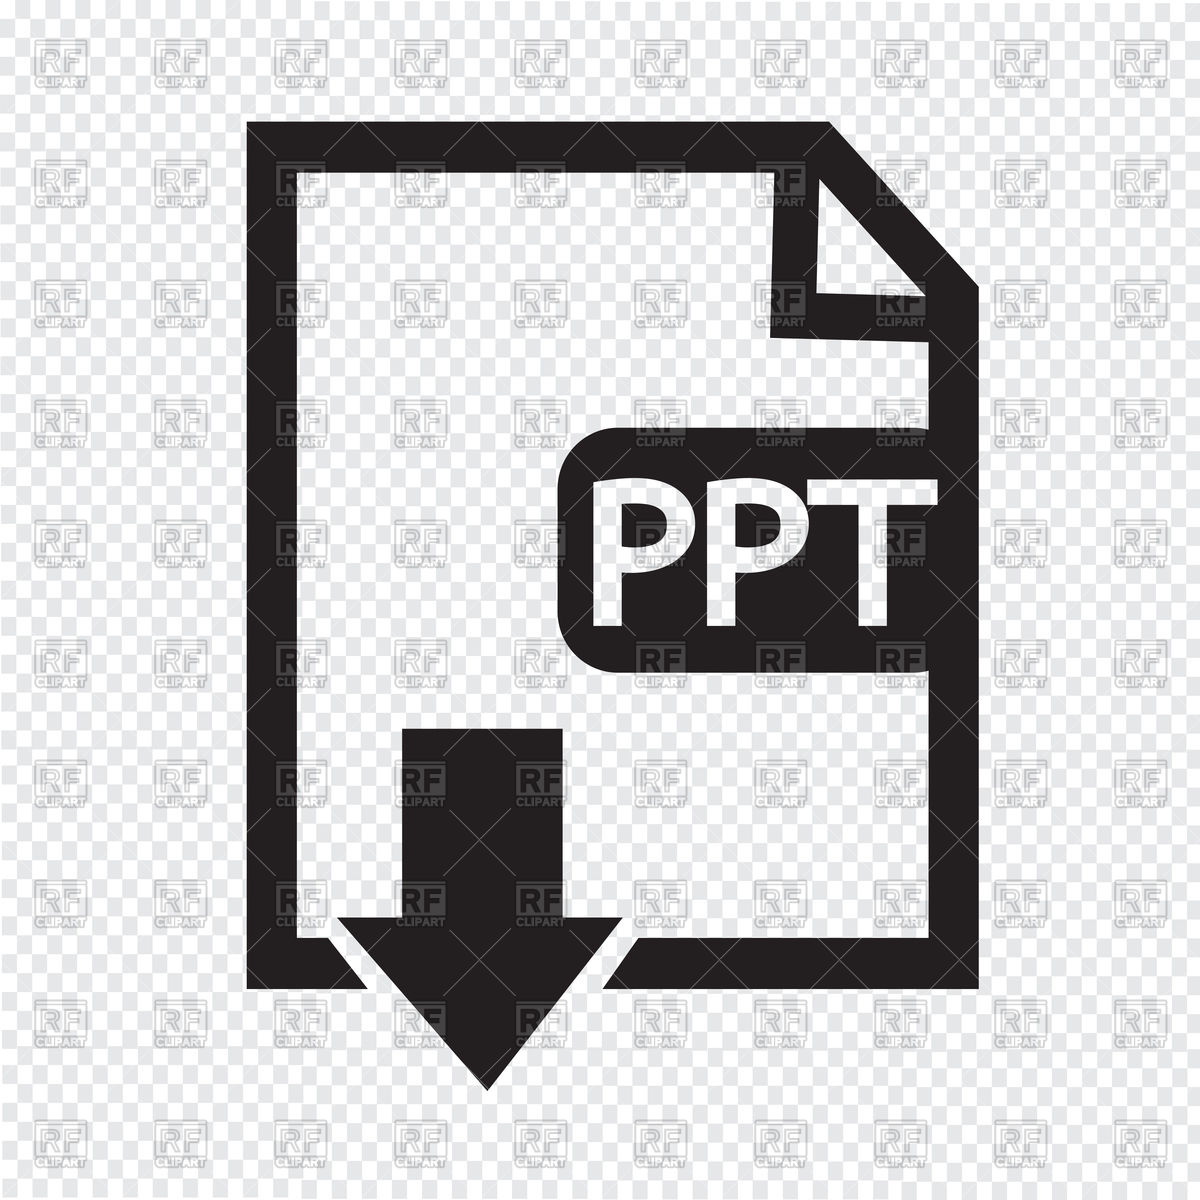 1200x1200 File In Ppt Format Download Icon Vector Image Vector Artwork Of